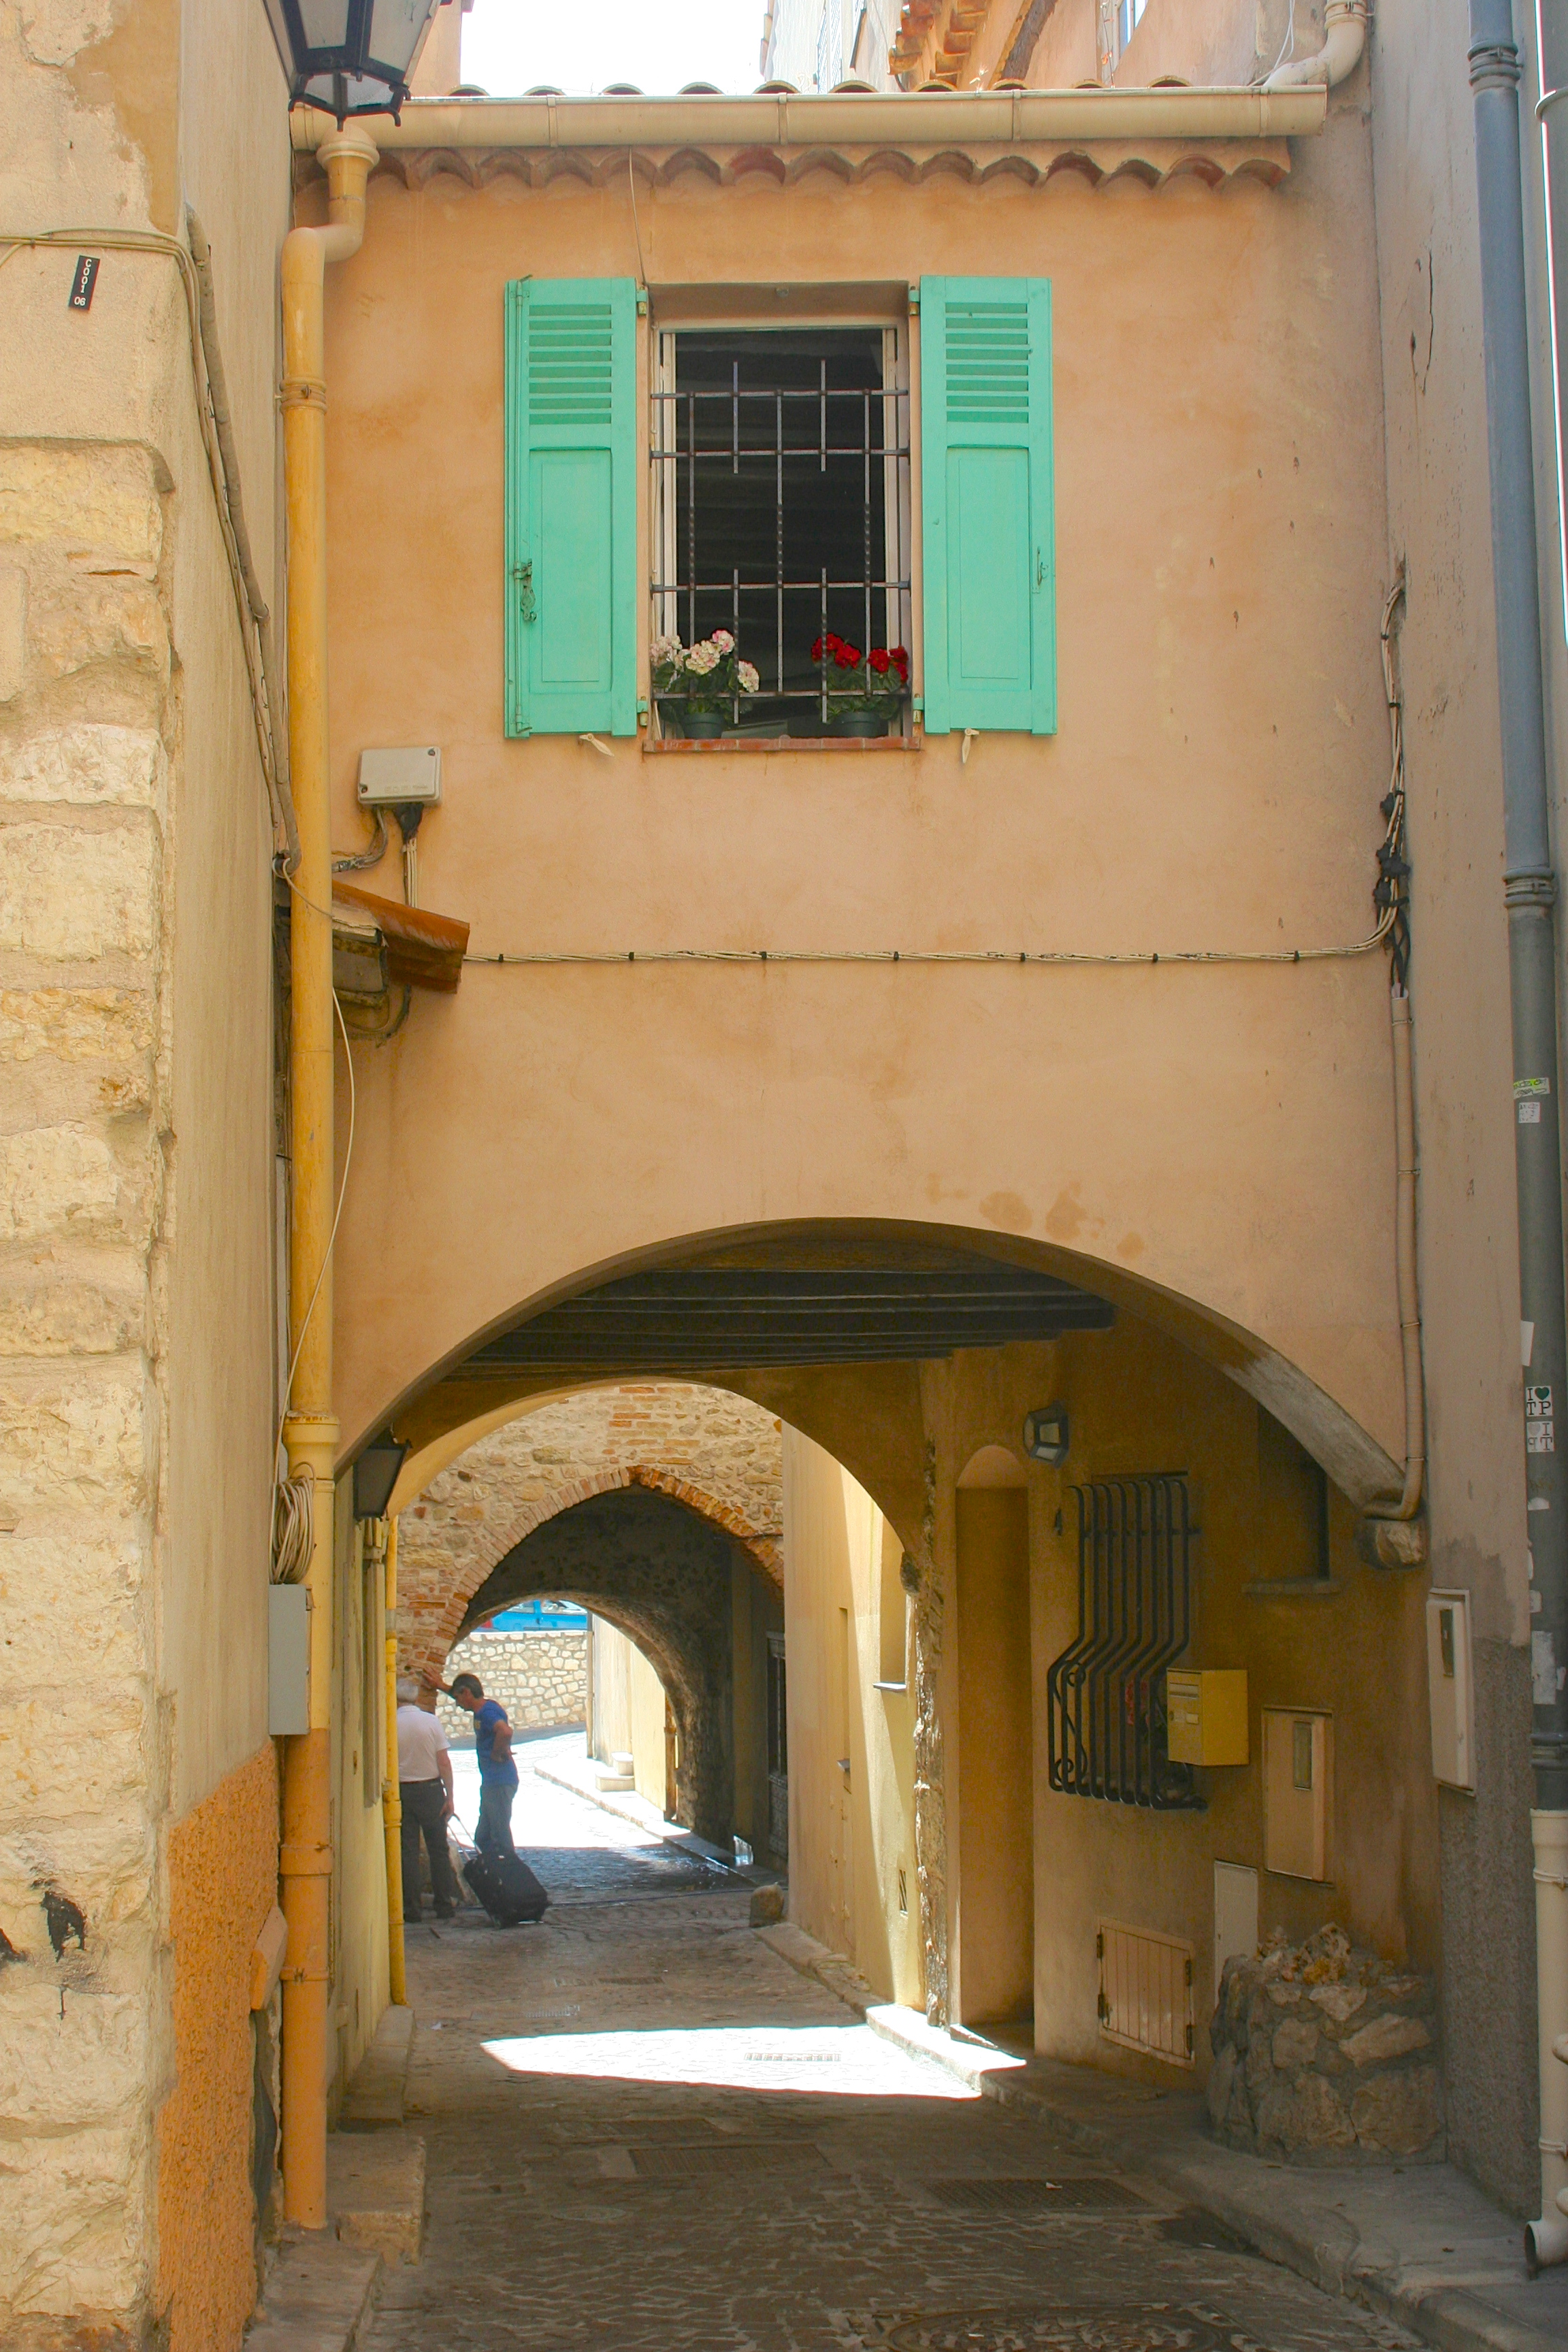 ANTIBES-PatriciaSandsPhotos